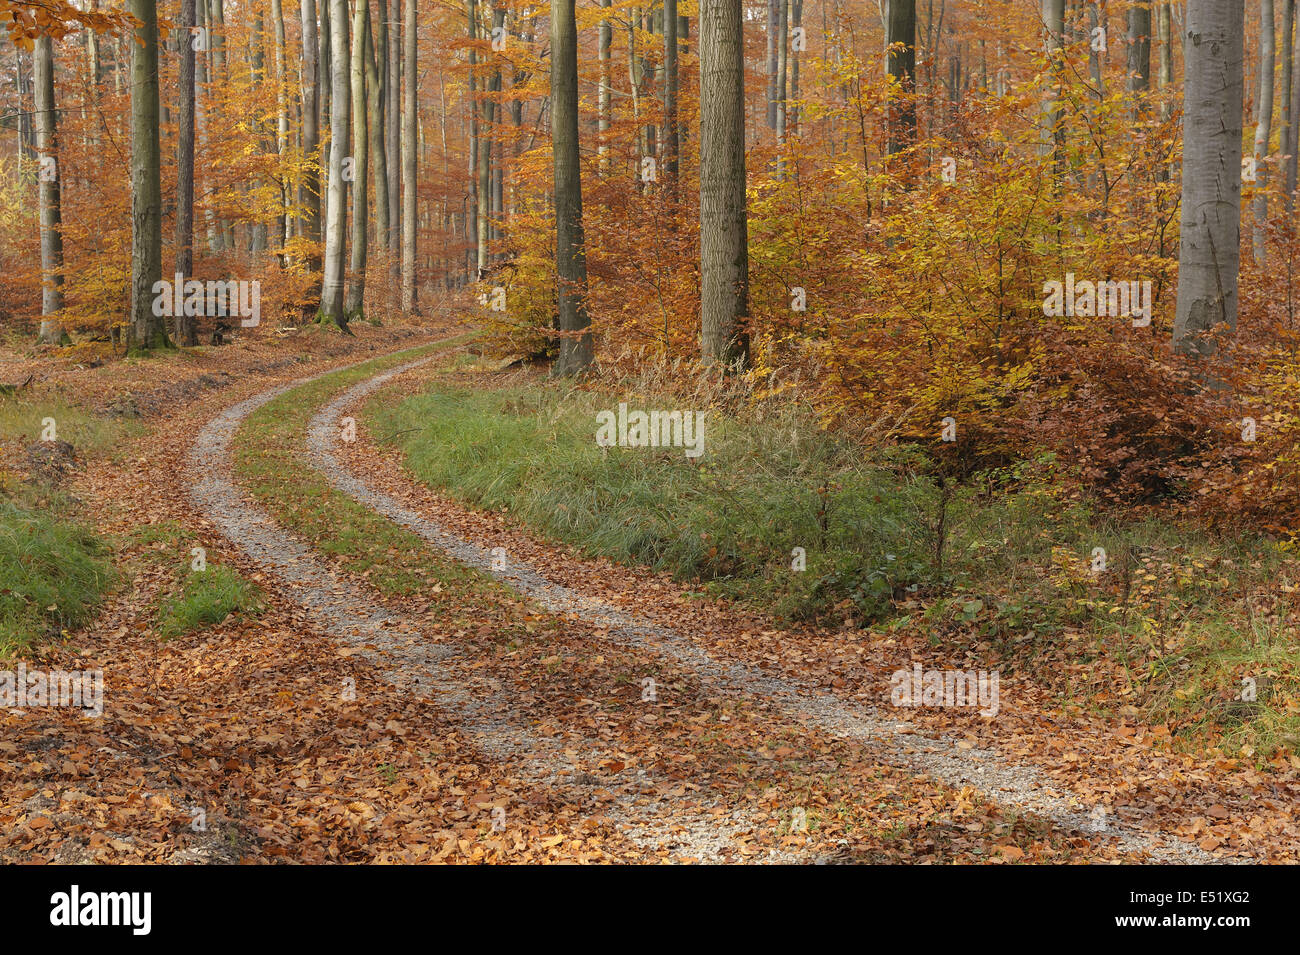 Beech forest in autumn, Germany Stock Photo